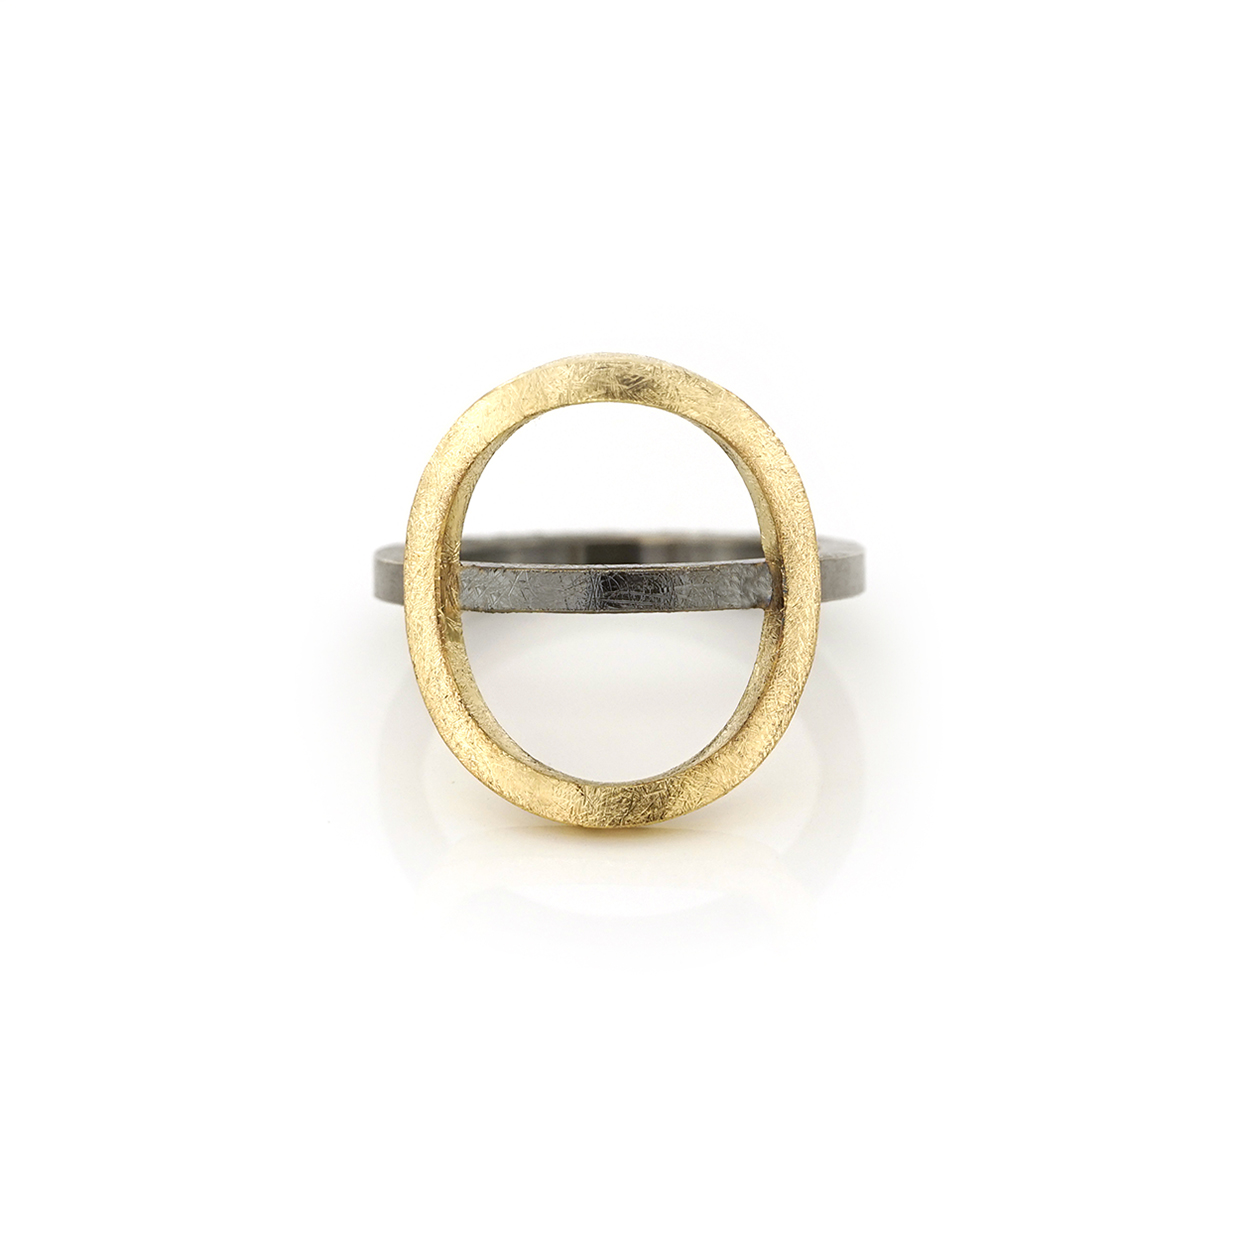 Silver ring with big gold circle